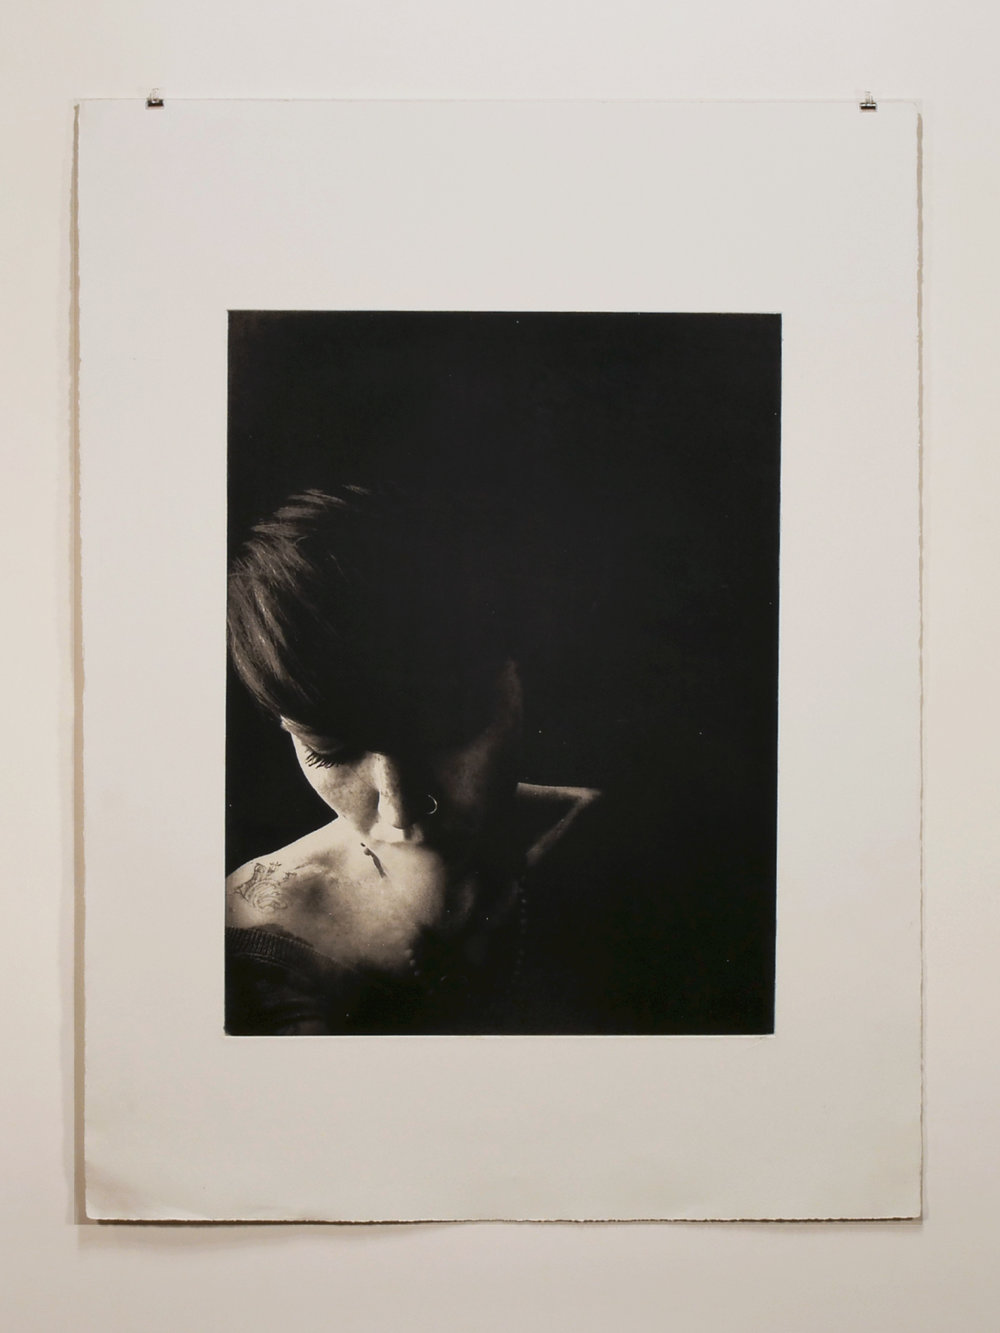 22 x 30 photogravure on Somerset Satin with gampi chine-collé